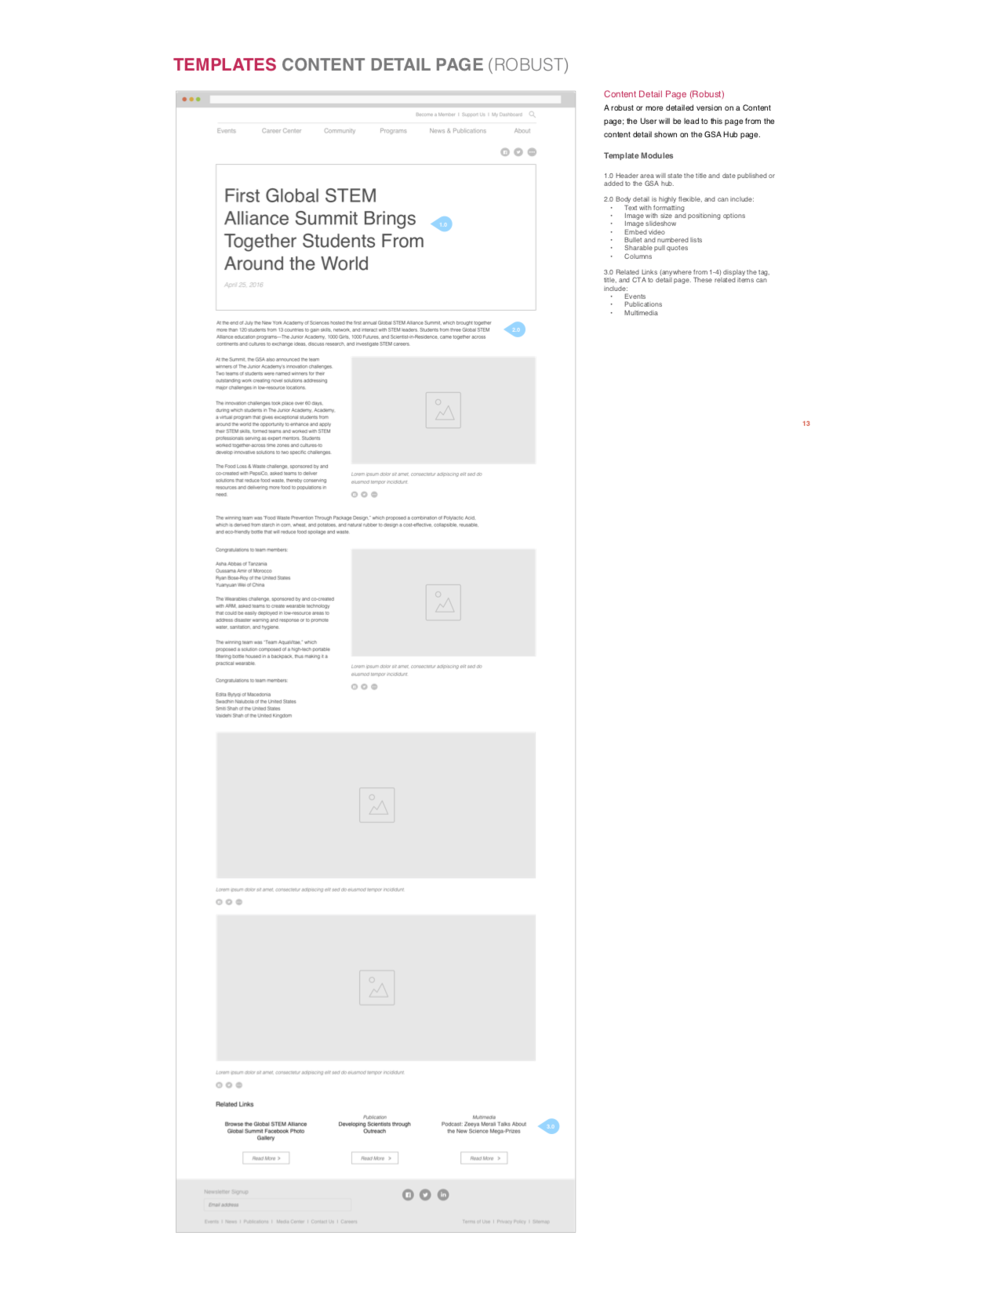 NYAS Content Detail Wireframe.png